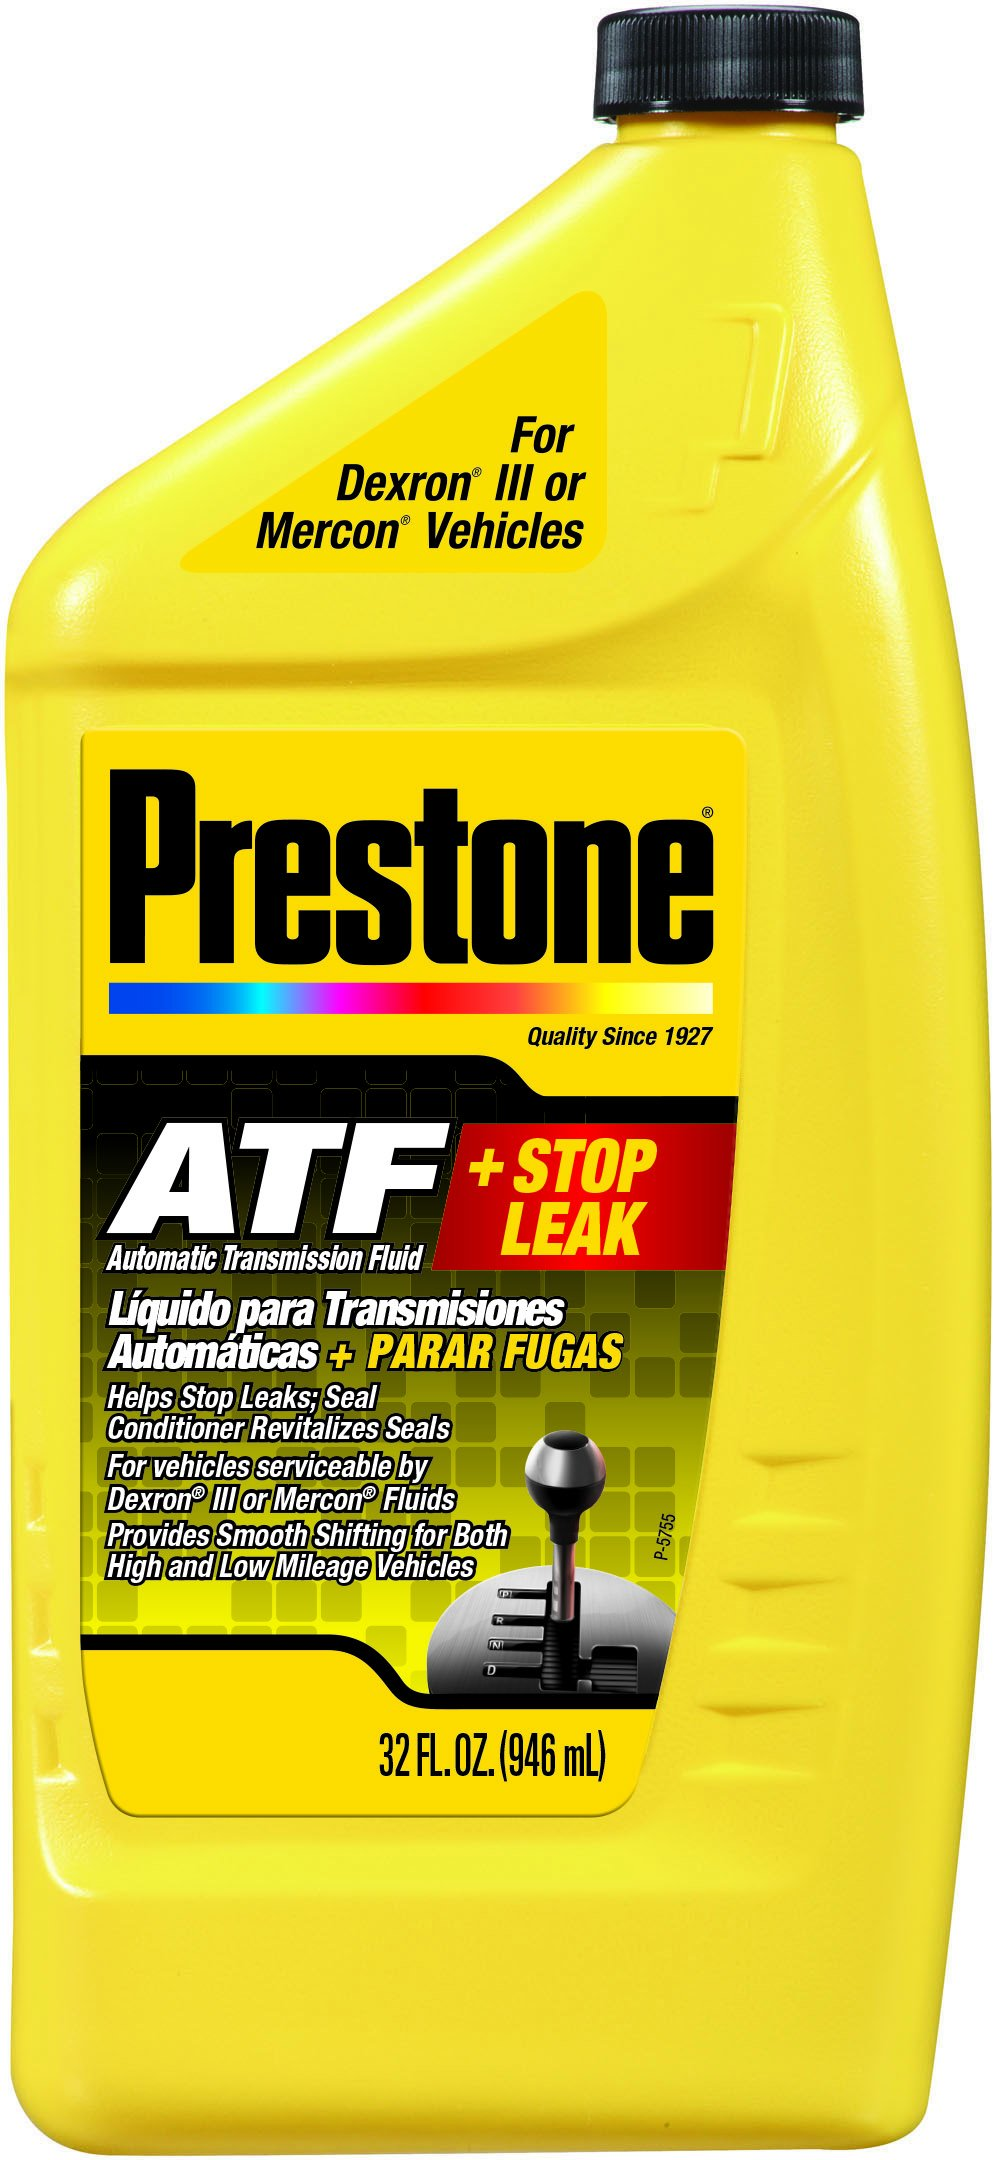 Prestone AS272-6PK Multi-Vehicle Automatic Transmission Fluid with Stop Leak - 32 oz, (Pack of 6)